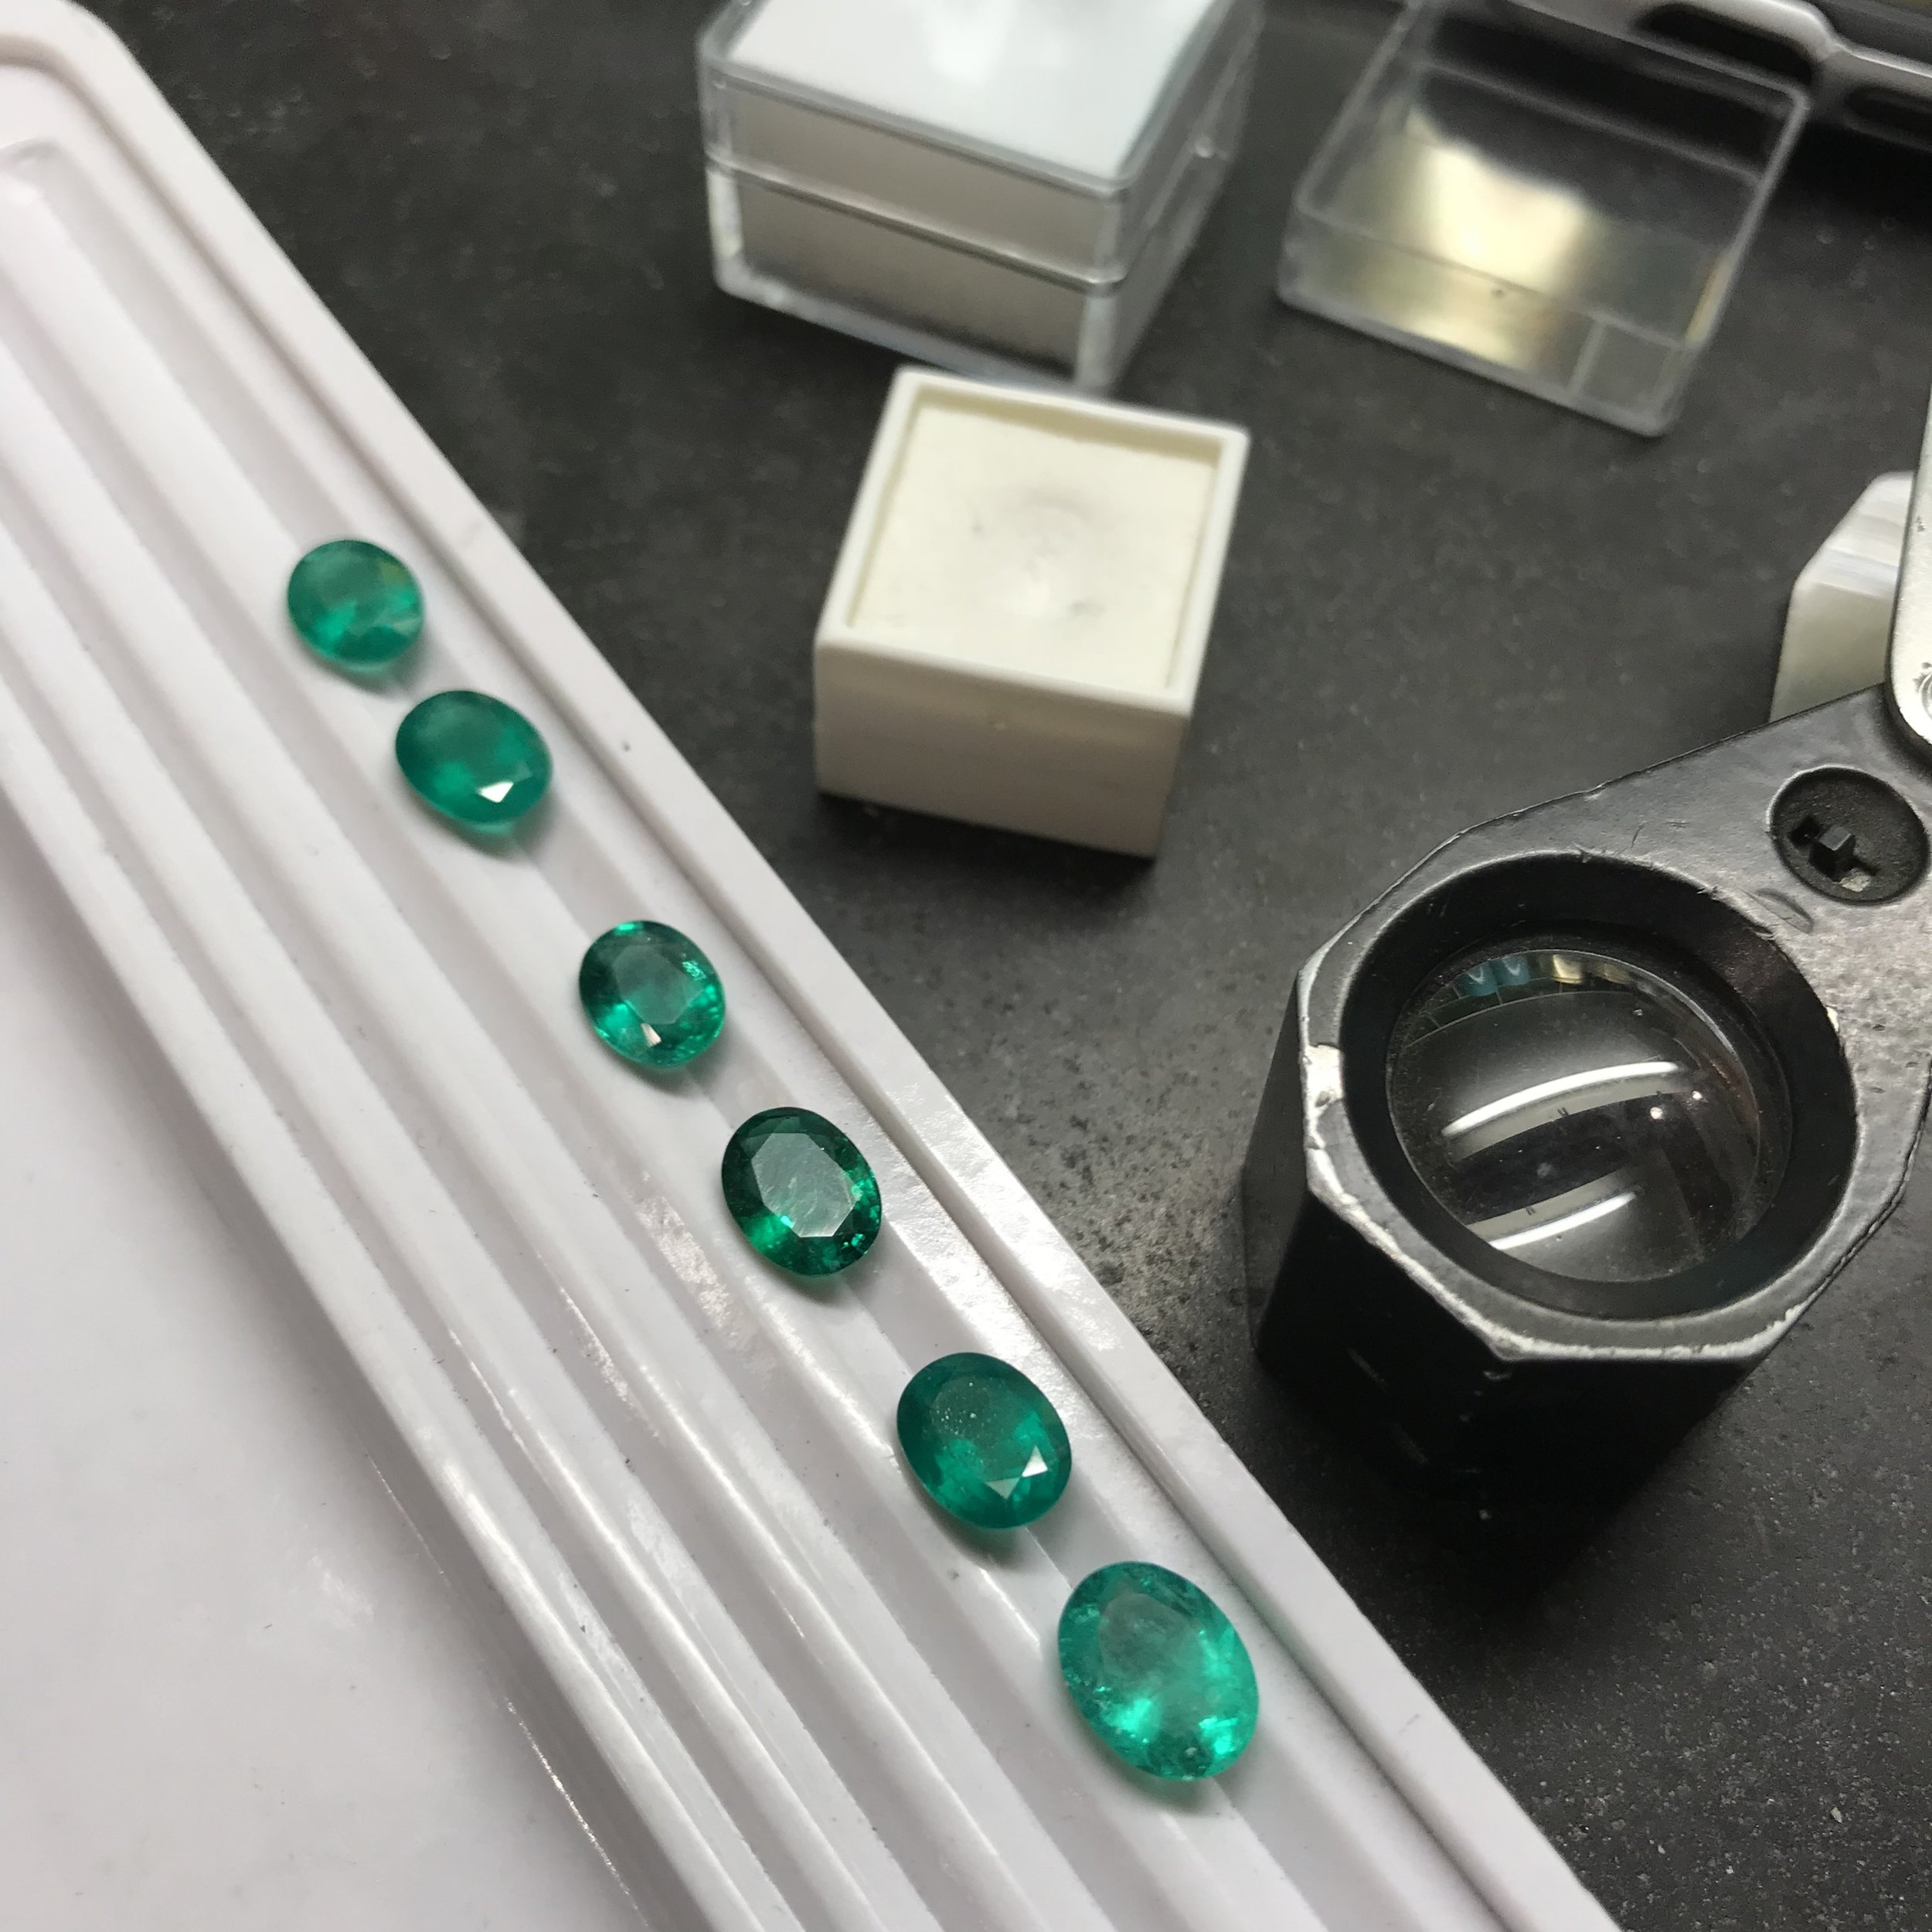 Stone selecting - Vivid green Emeralds sourced for a client commission. The birthstone for May, Emeralds can be more sort after than Diamonds.